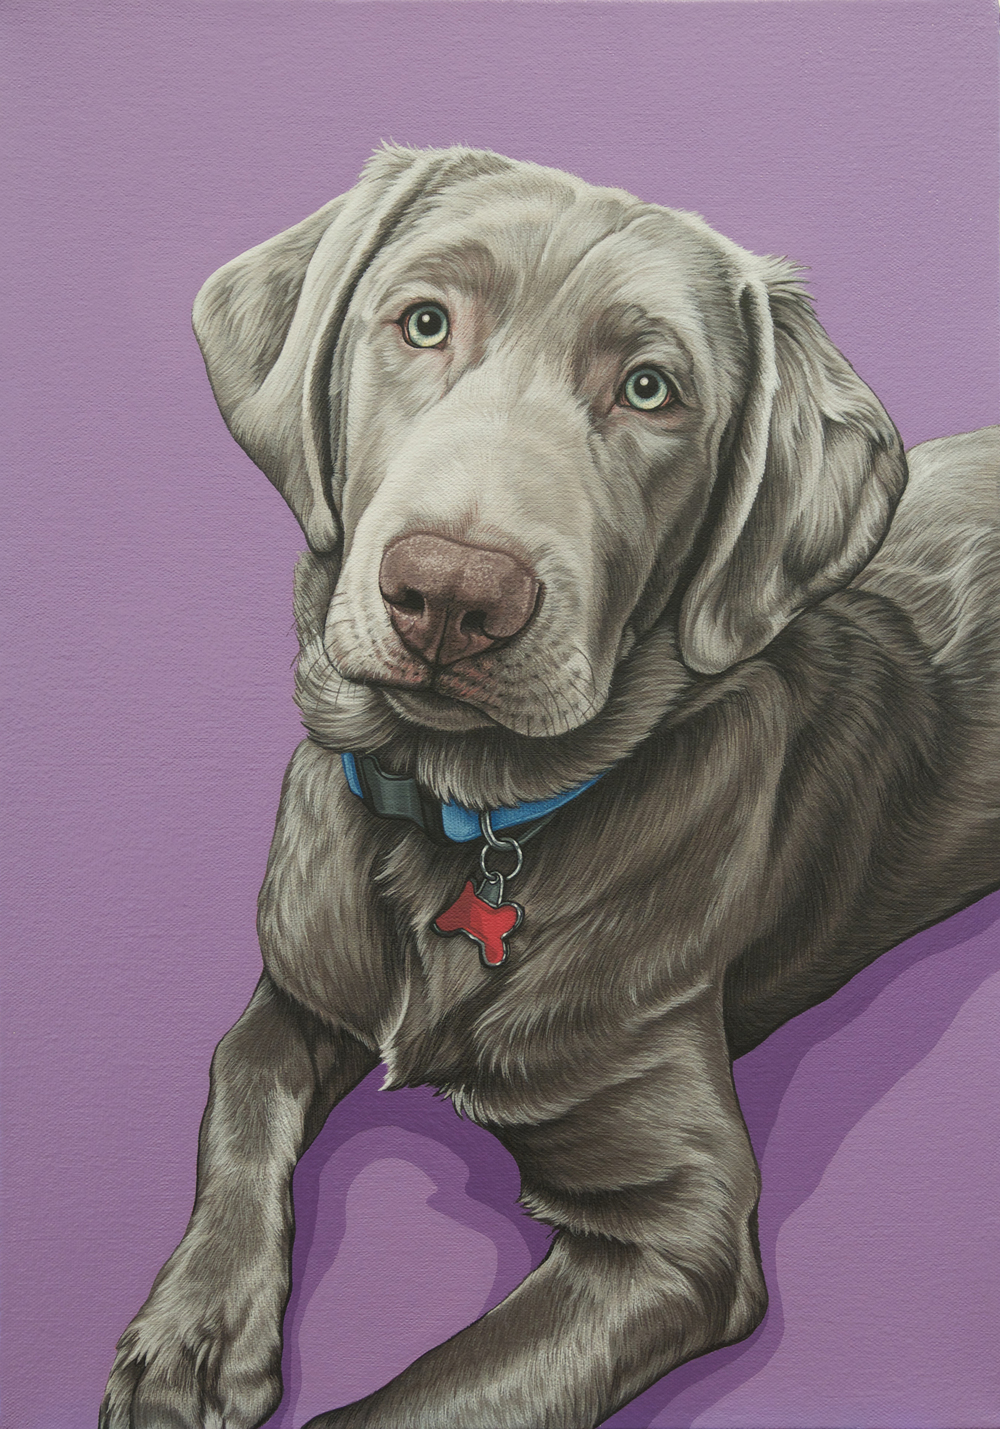 """Hudson"", latex enamel on canvas, 14""x 20"", 2016"